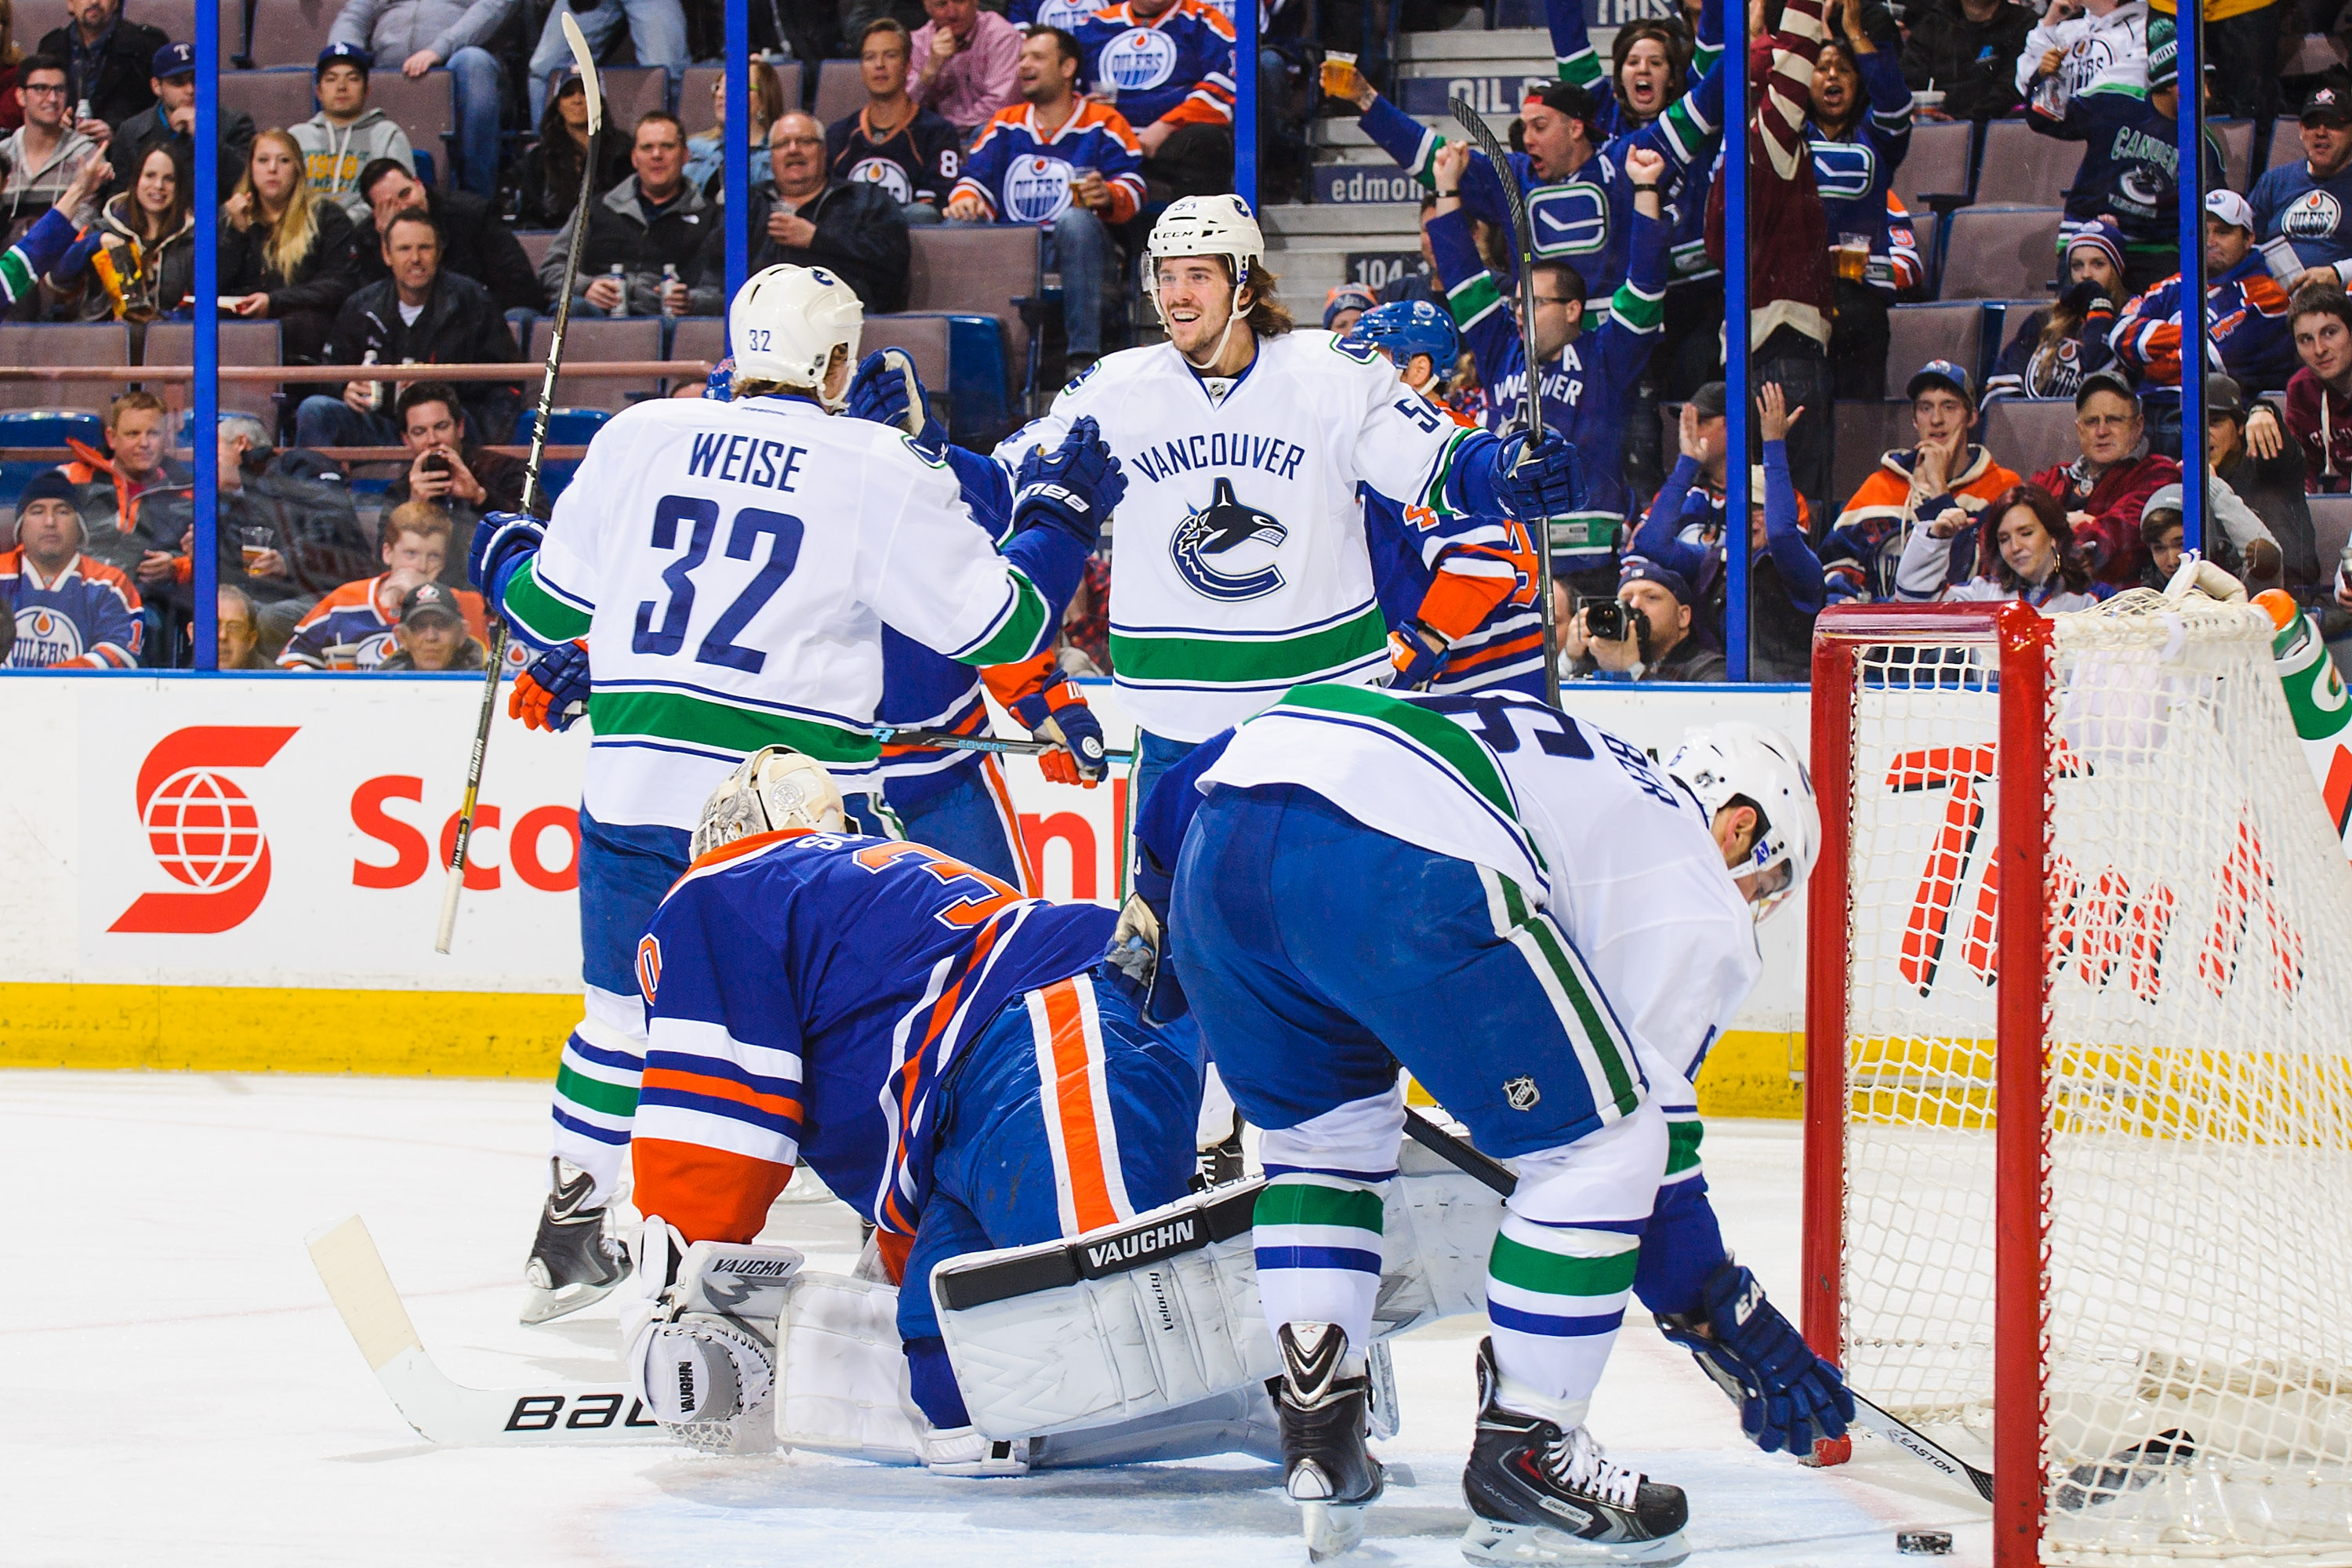 Canucks rookie Kellan Lain scored his first NHL goal in his second career game.